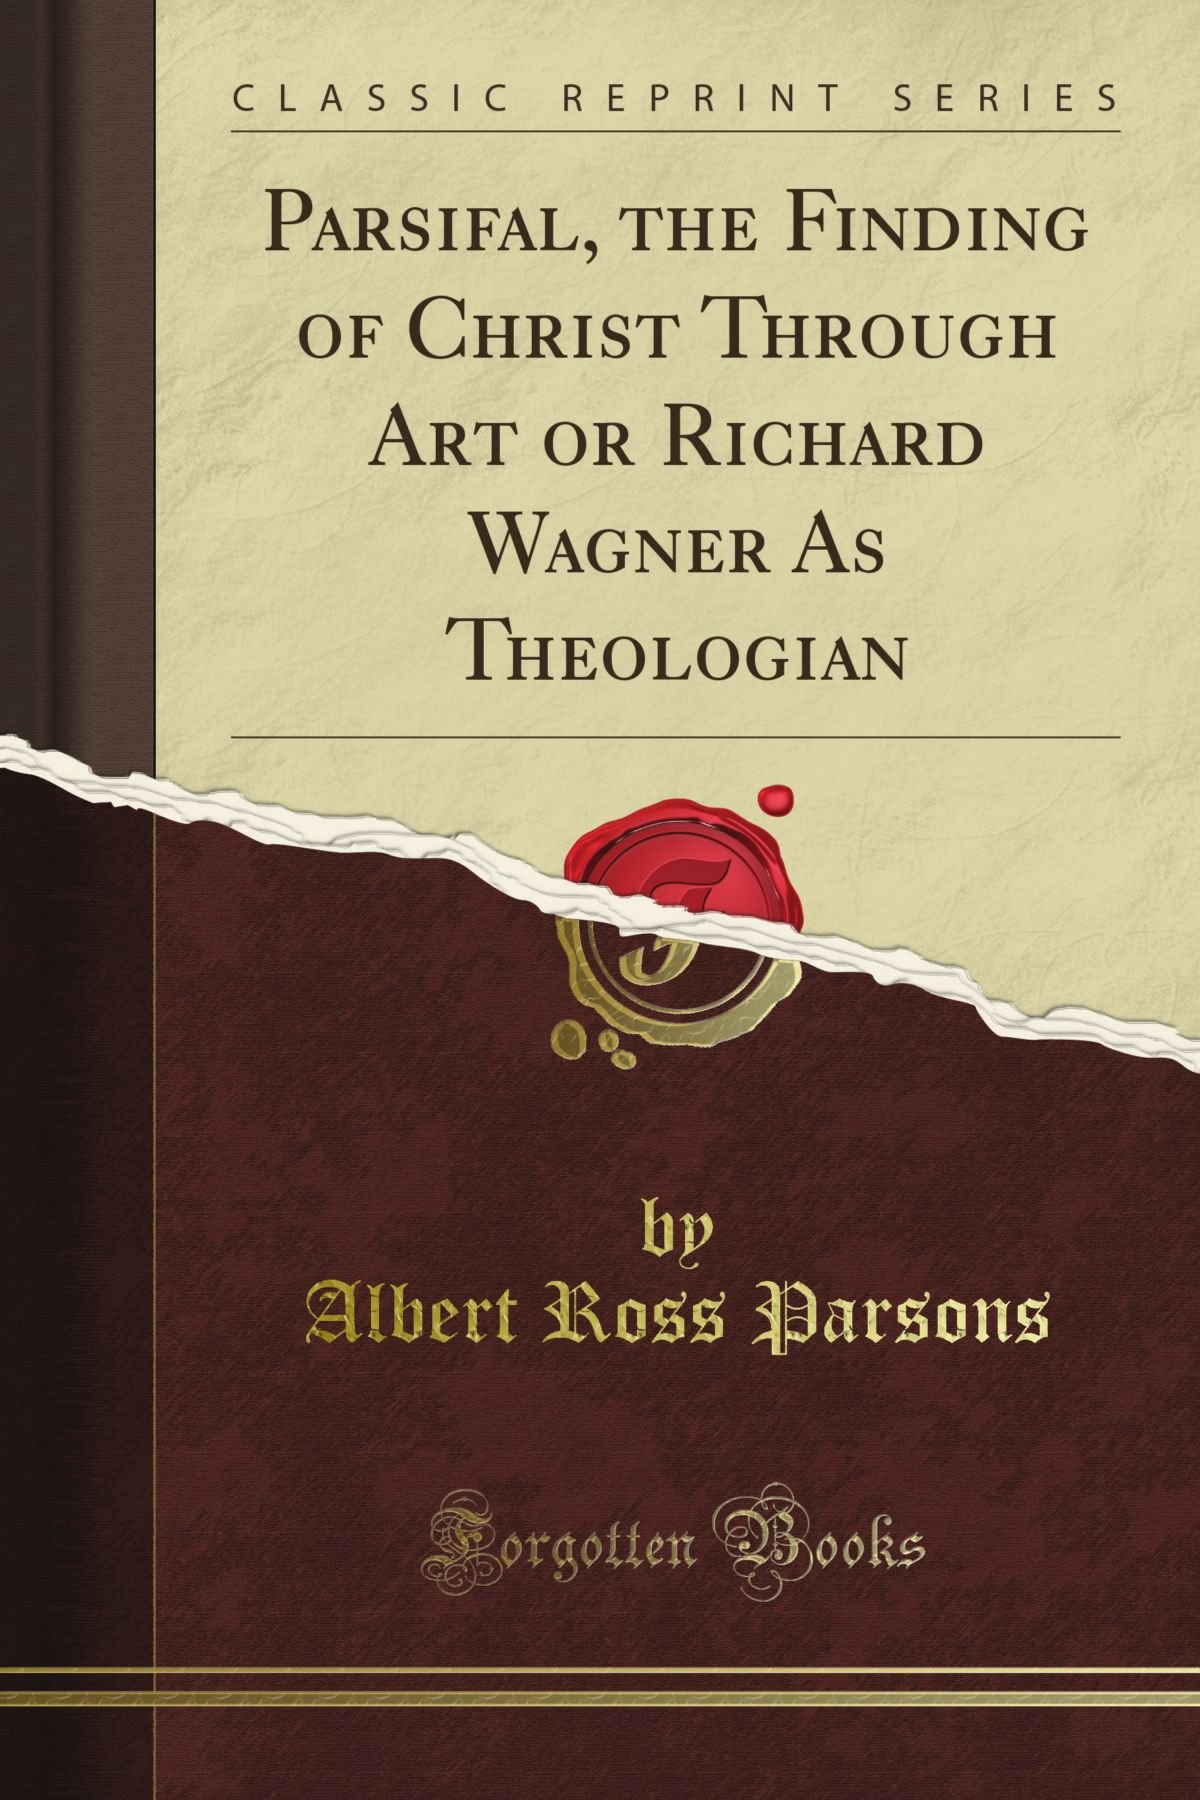 Parsifal, the Finding of Christ Through Art or Richard Wagner As Theologian (Classic Reprint) ebook